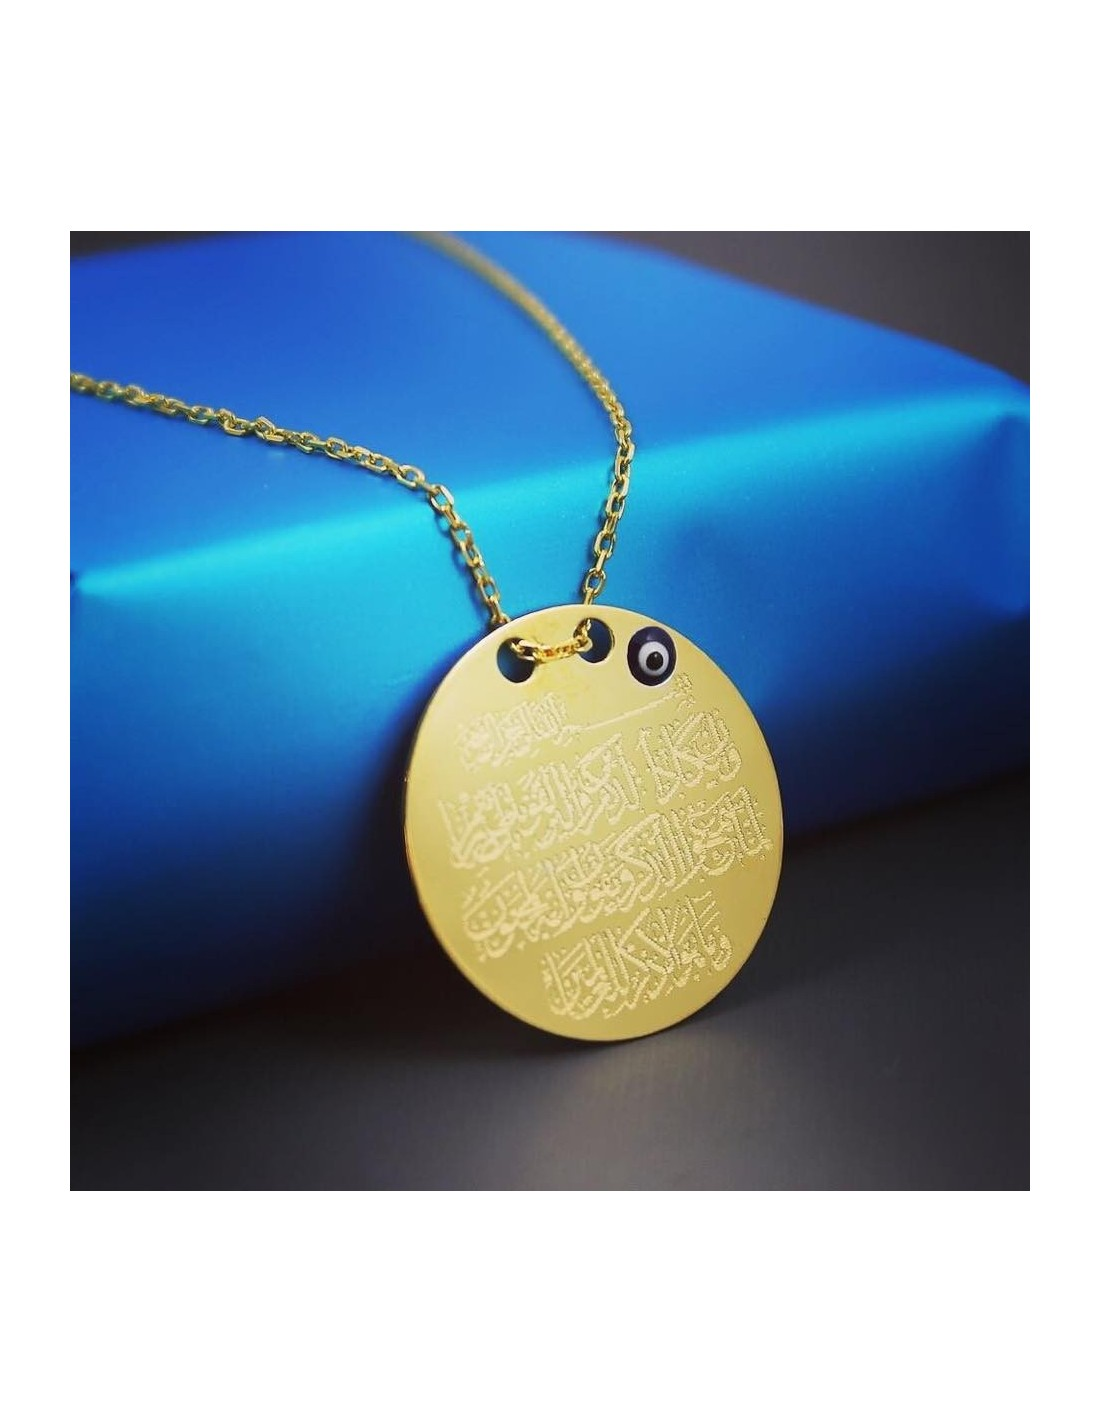 Evil eye protection surat medallion necklace in sterling silver evil eye protection surat medallion necklace in sterling silver aloadofball Image collections